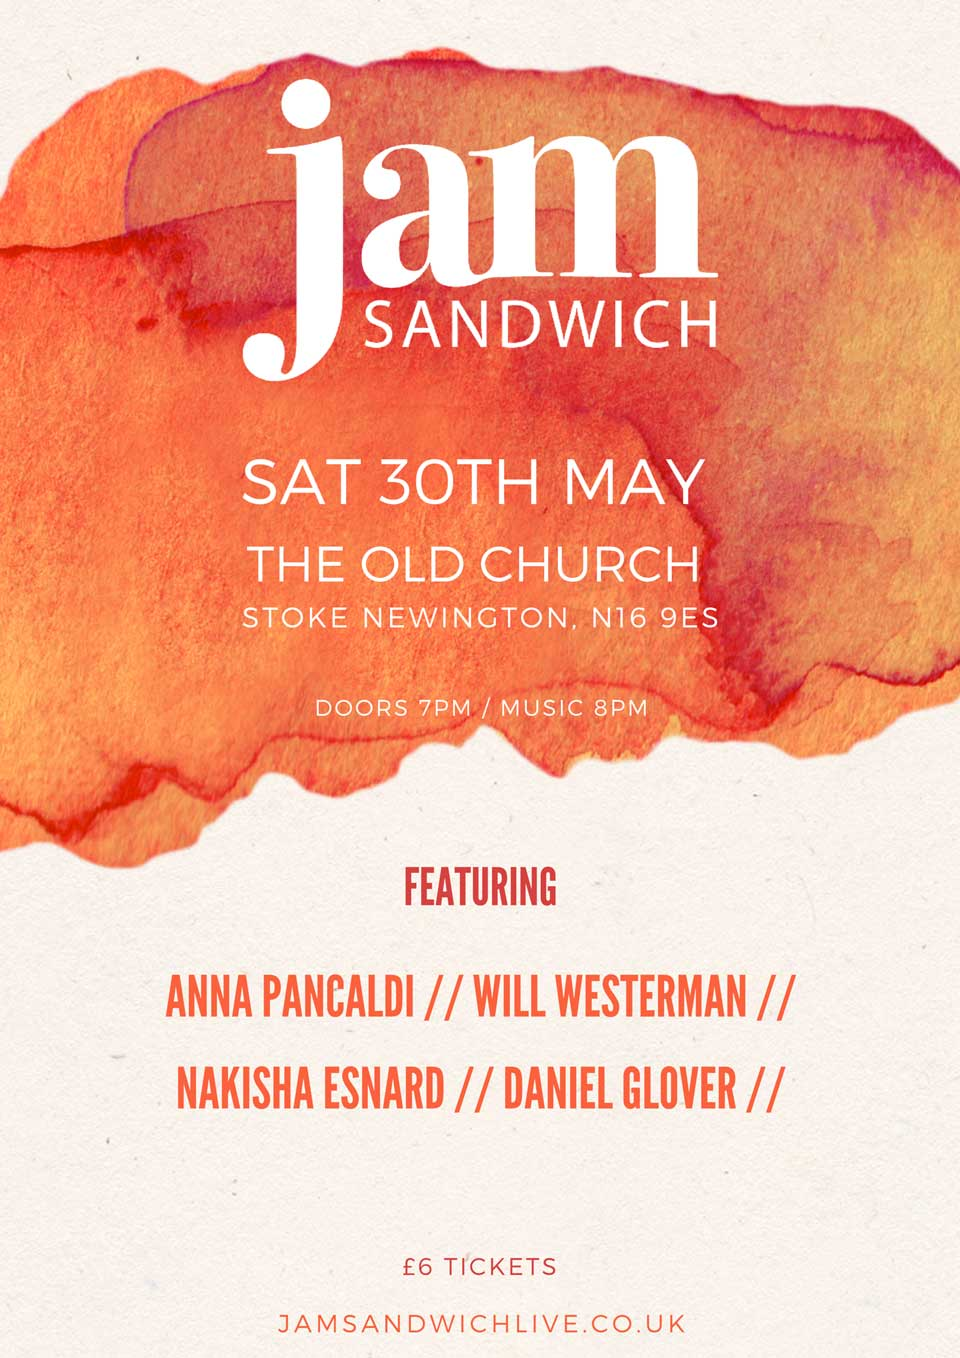 summer-jam-SANDWICH-web